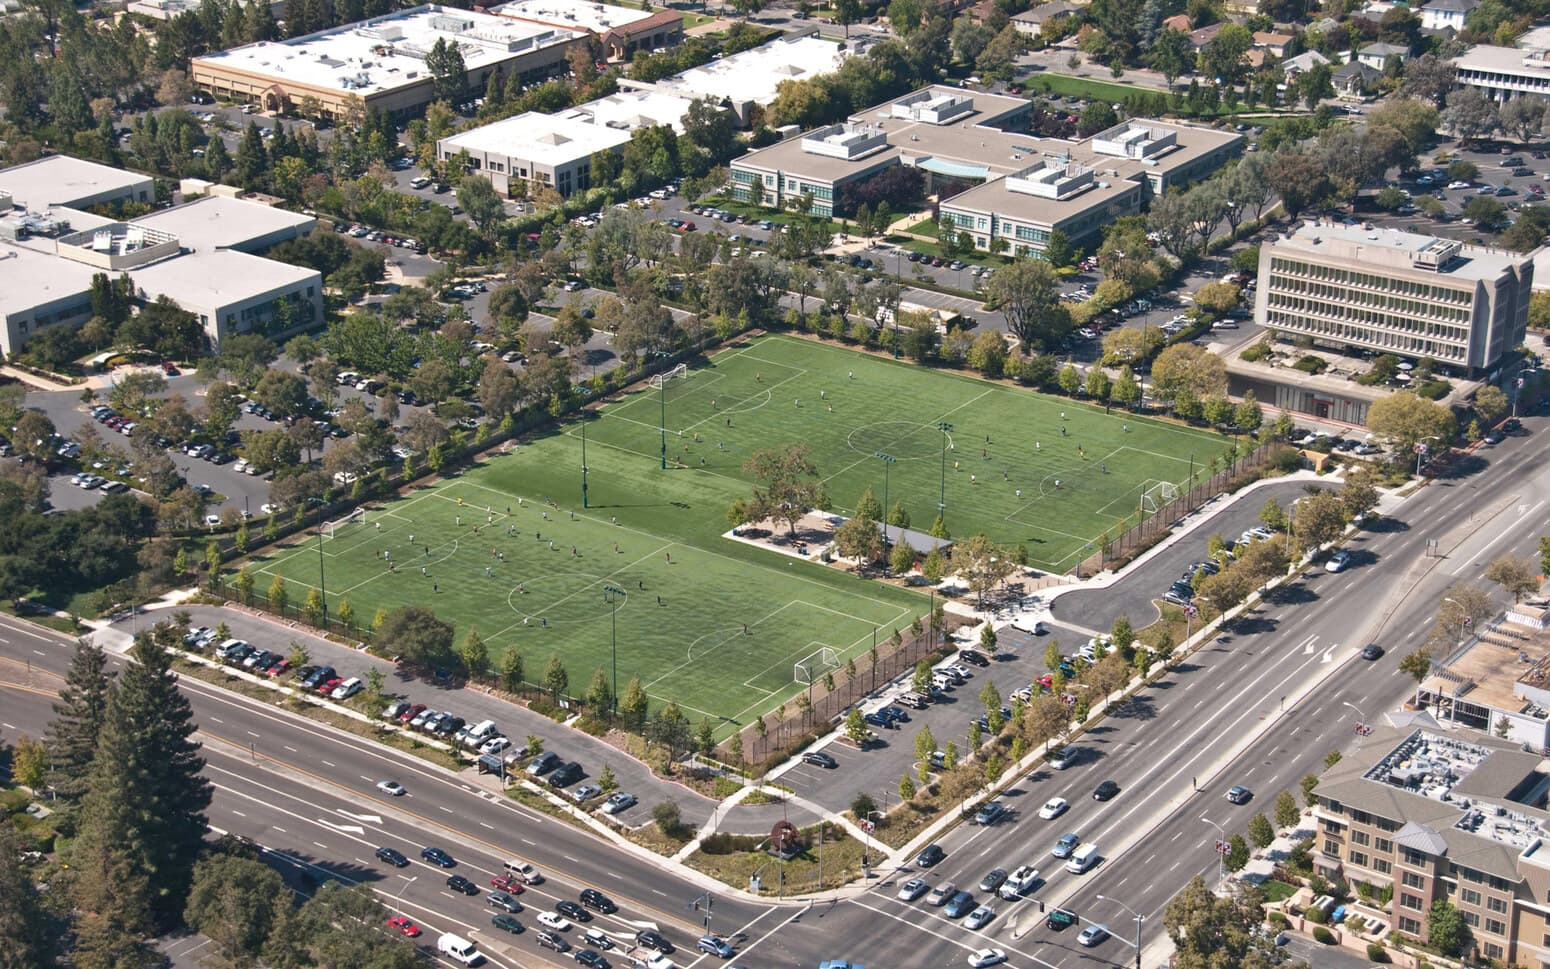 Mayfield Soccer Complex